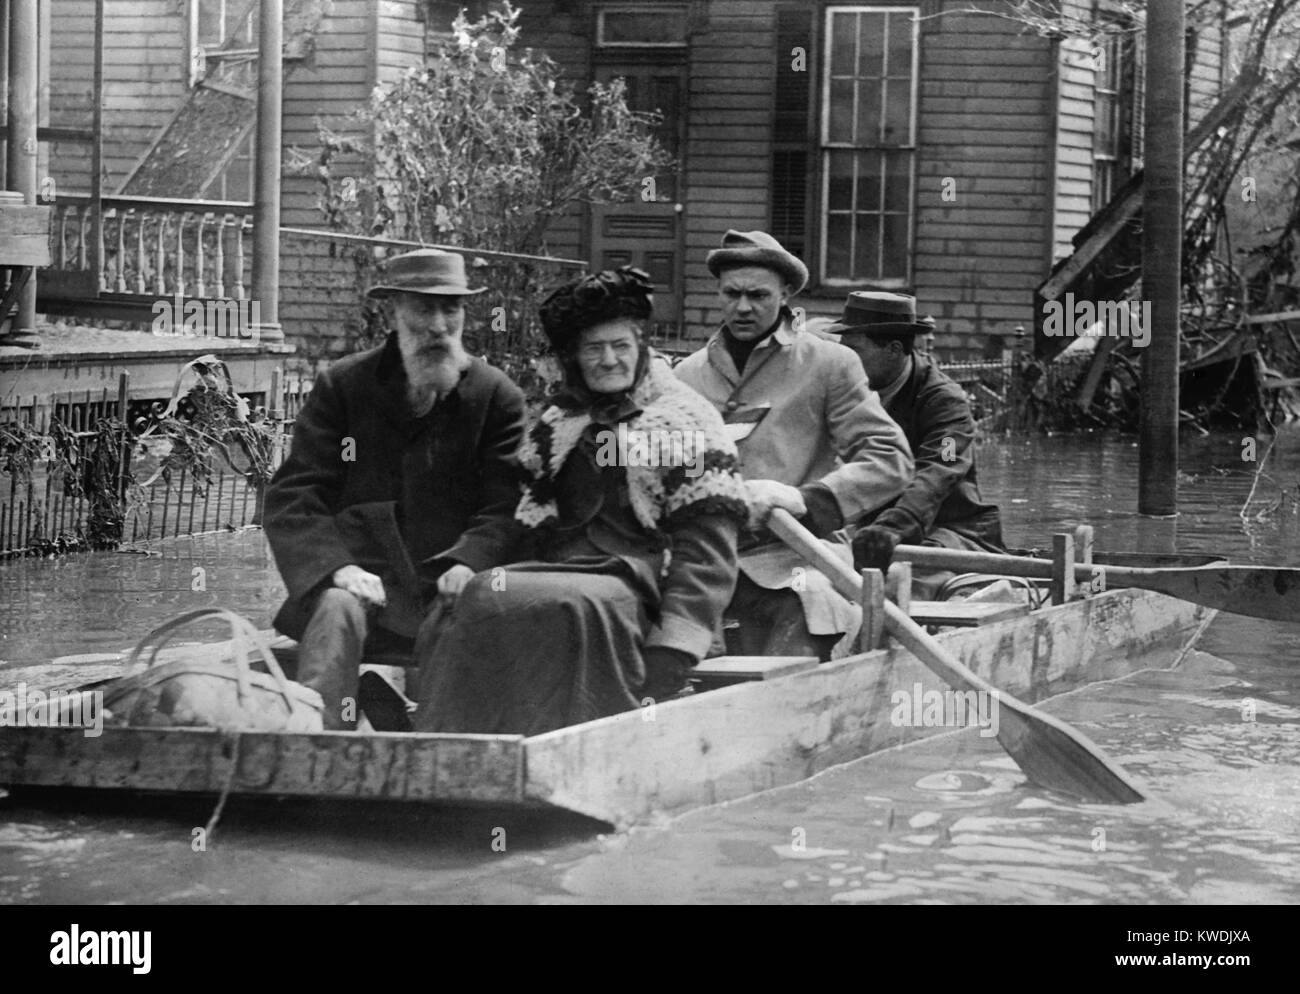 An elderly couple is evacuated from their Dayton home in a small wood boat in March 1913. During the Great Flood - Stock Image